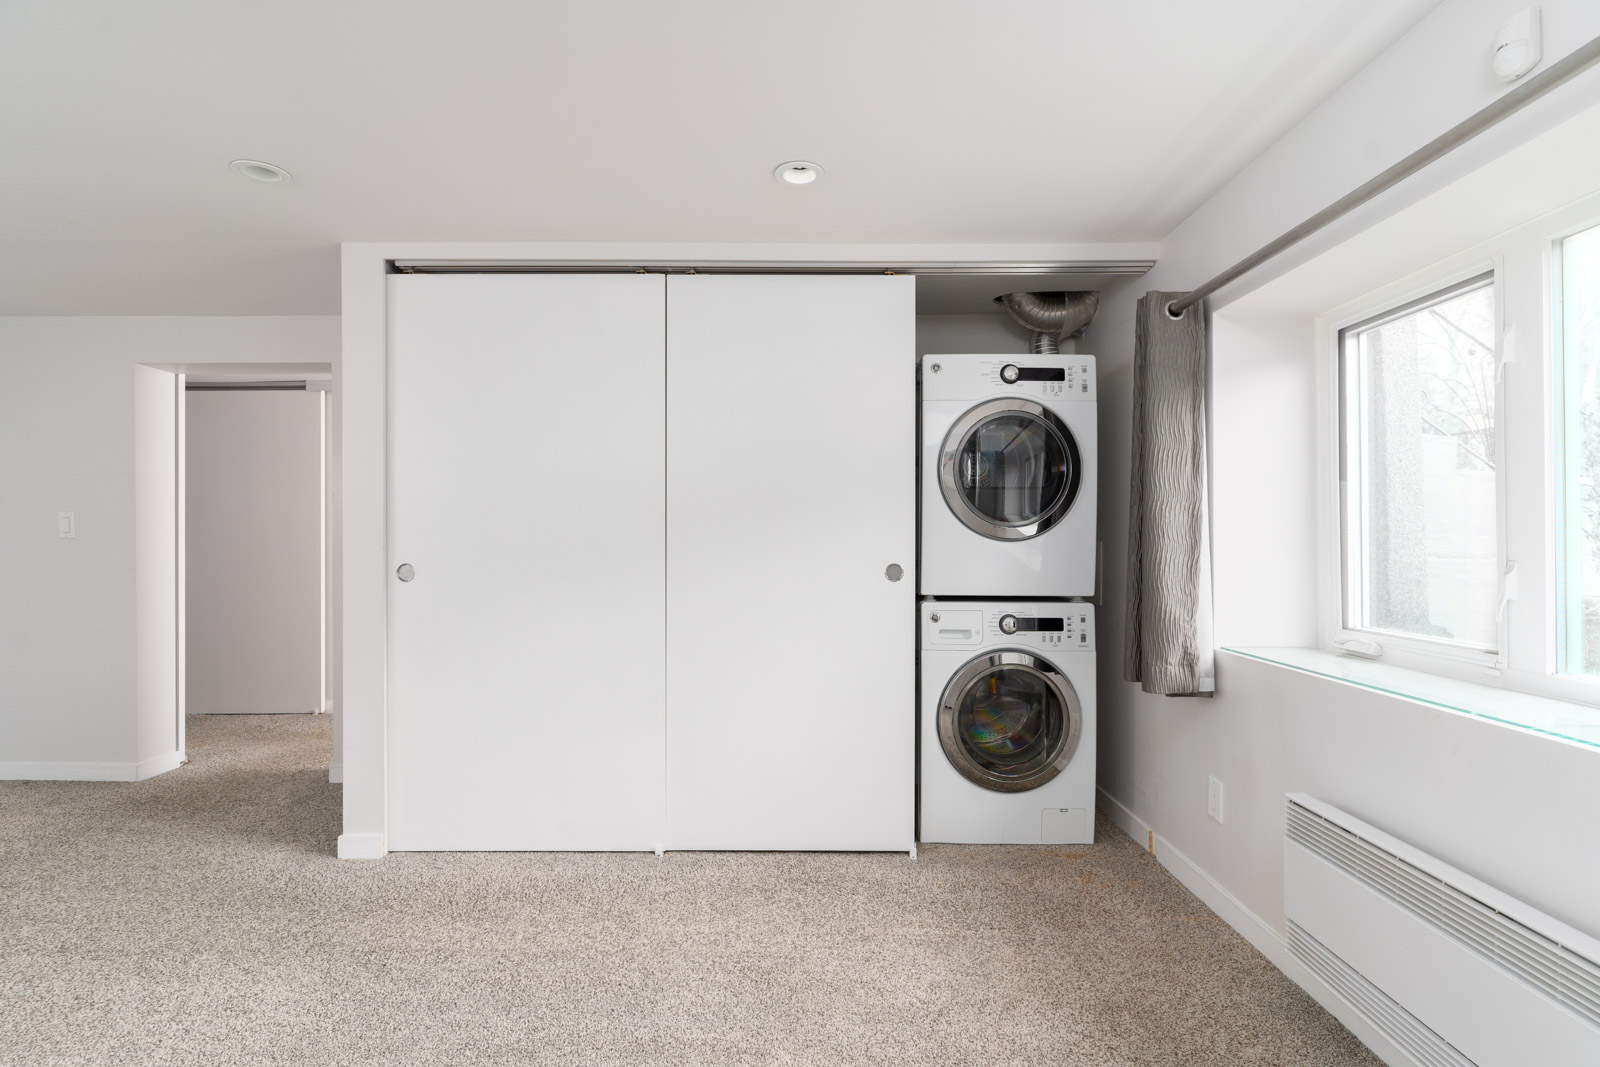 Basement suite equipped with washer and dryer in a basement suite managed by Birds Nest Properties